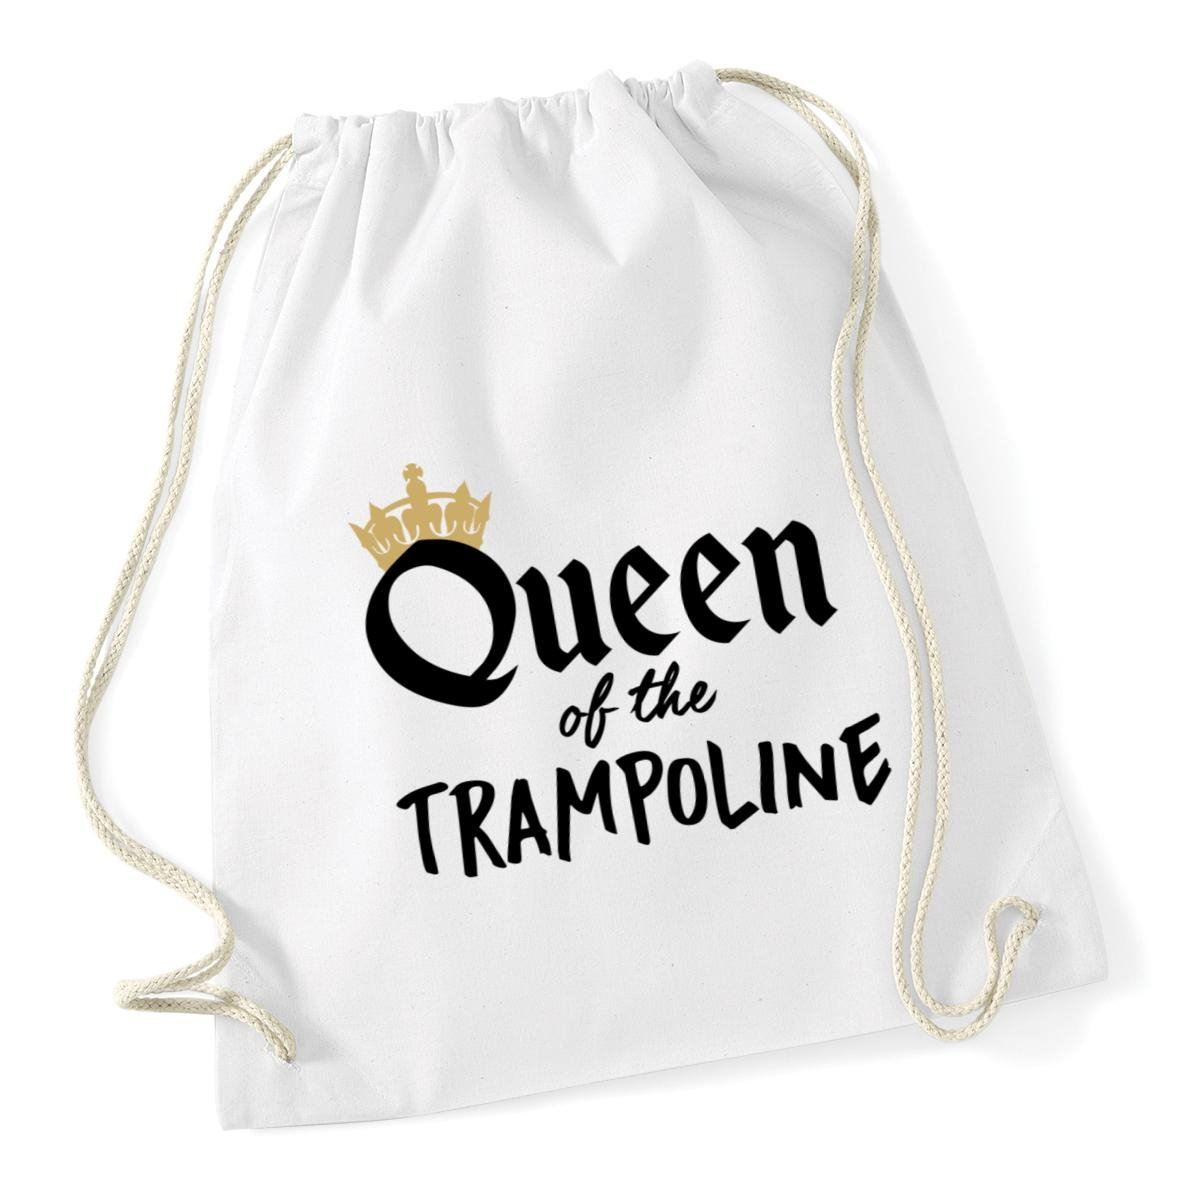 HippoWarehouse Queen of the Trampoline Trampolining Drawstring Cotton School Gym Kid Bag Sack 37cm x 46cm, 12 litres 21035-DSB-Black